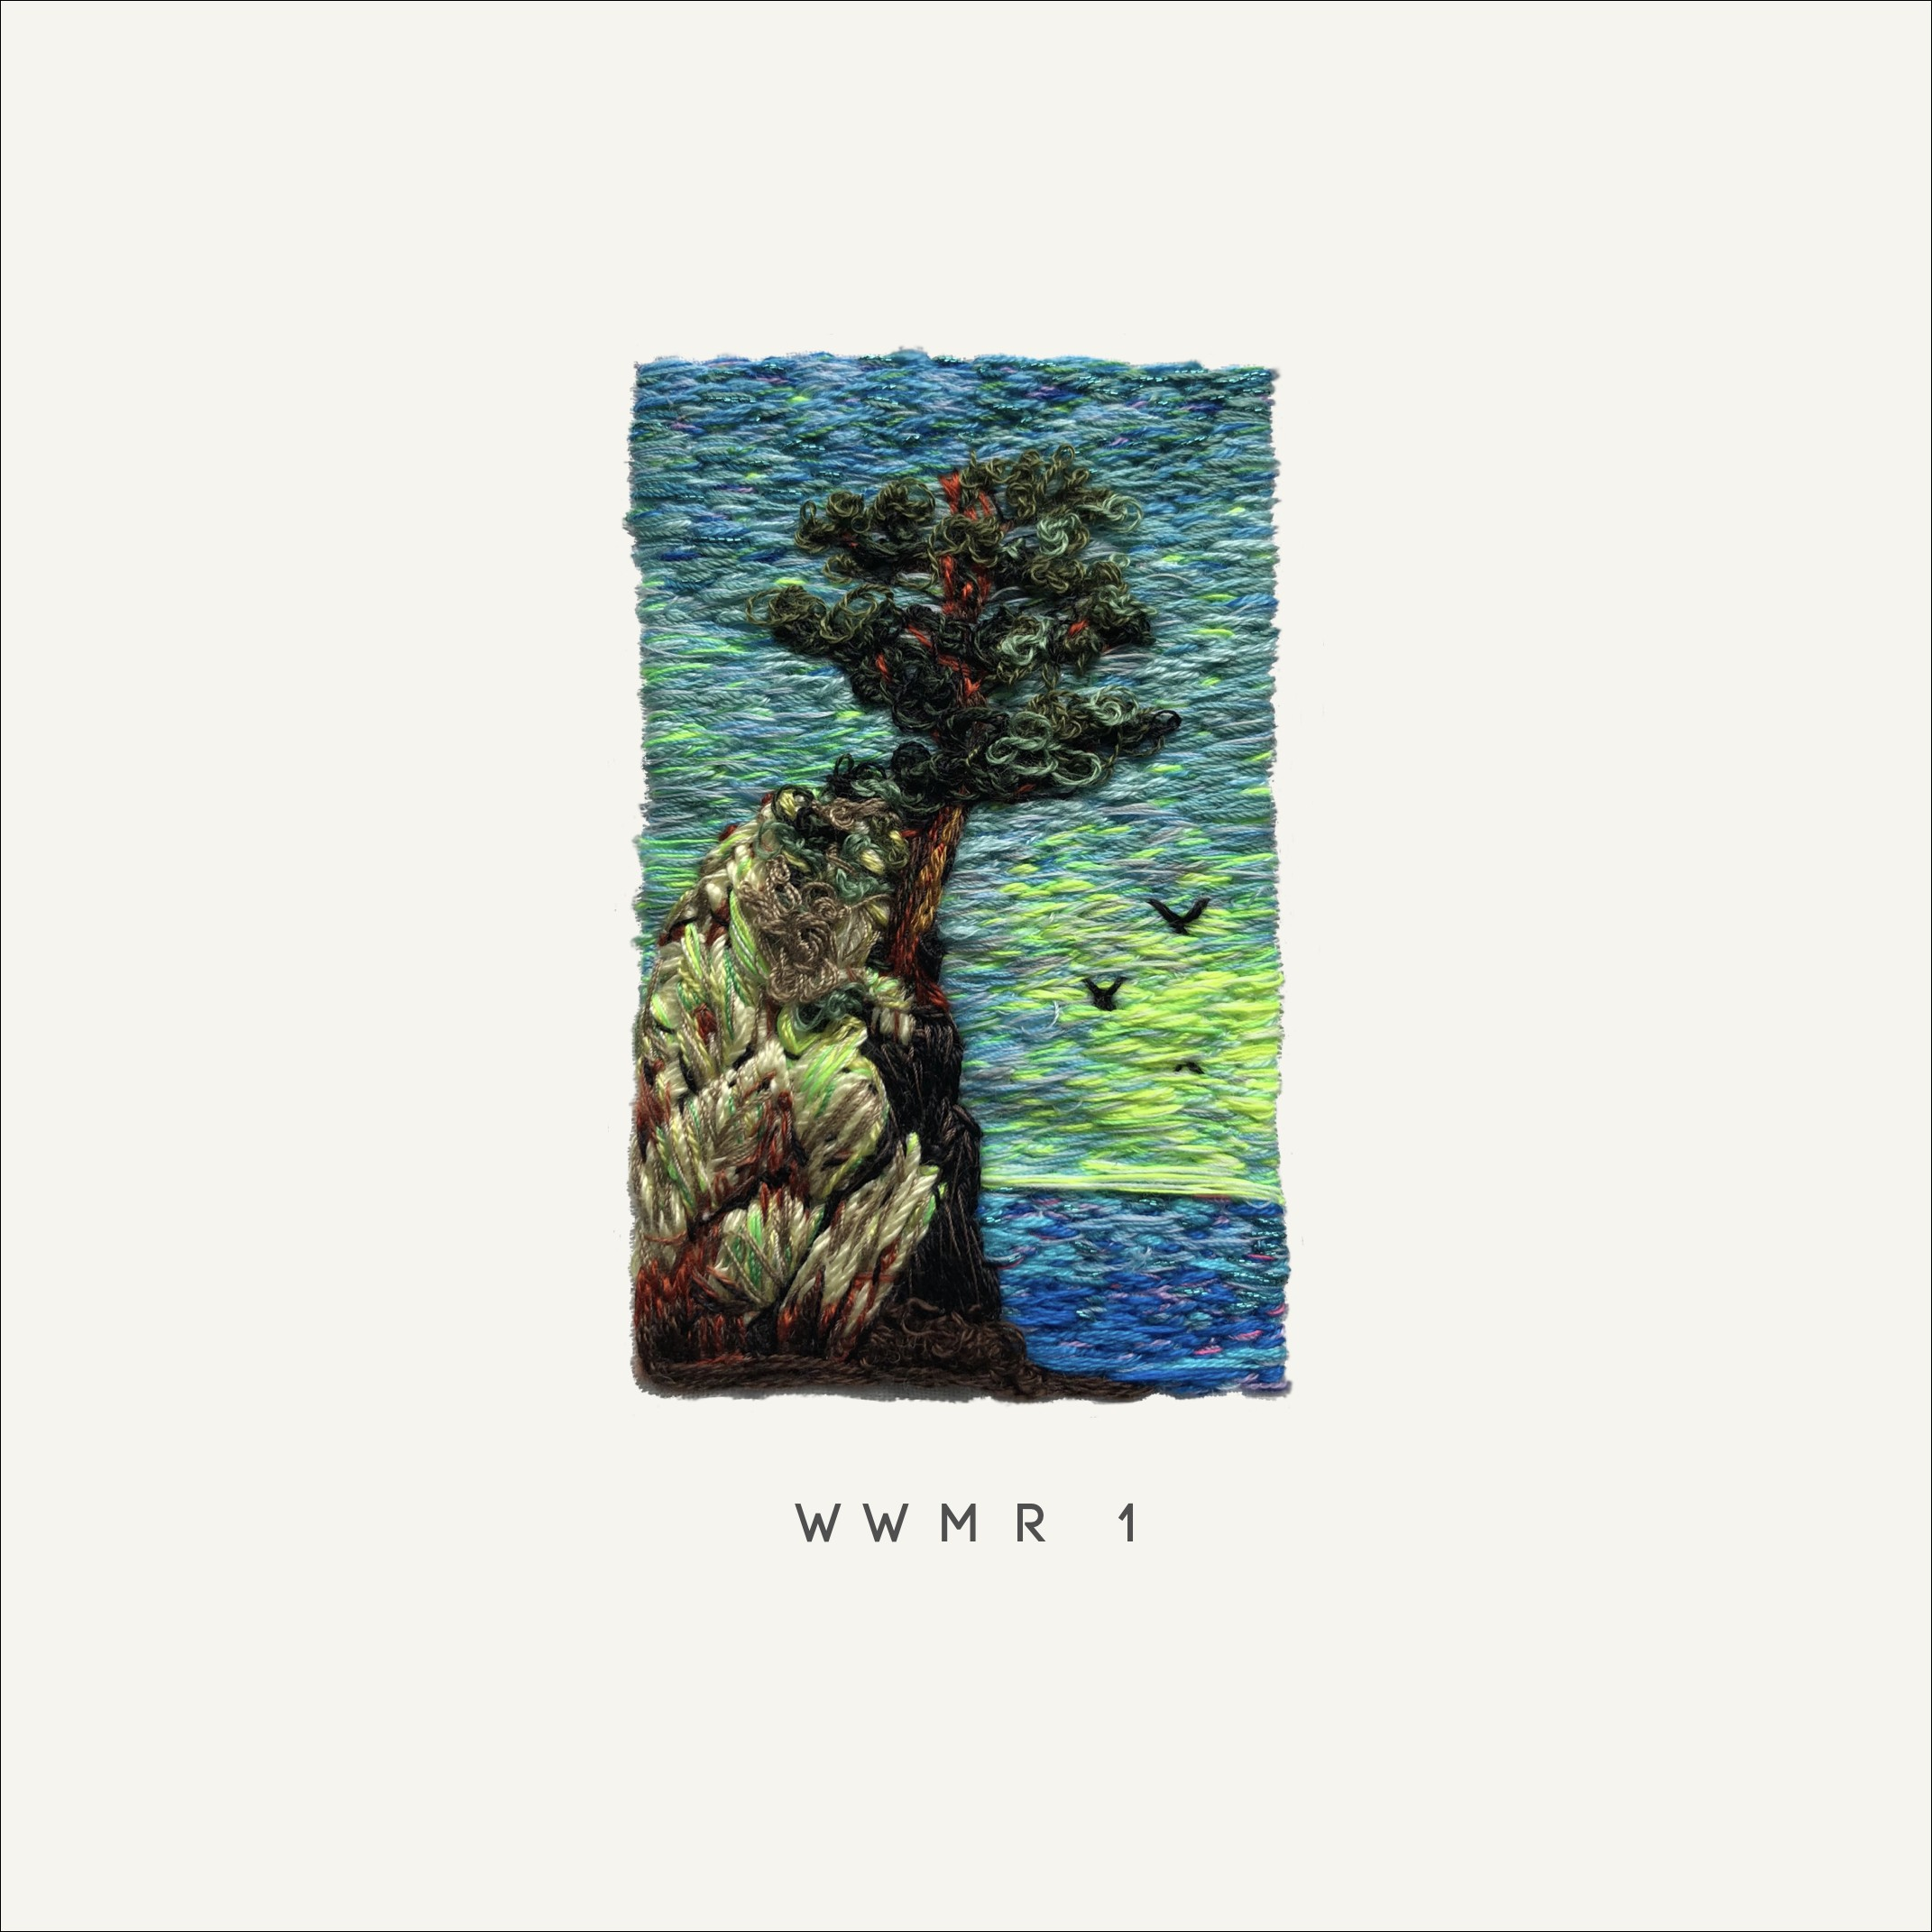 wai wai music resort – WWMR 1 [FLAC + MP3 320 / WEB] [2019.04.17]